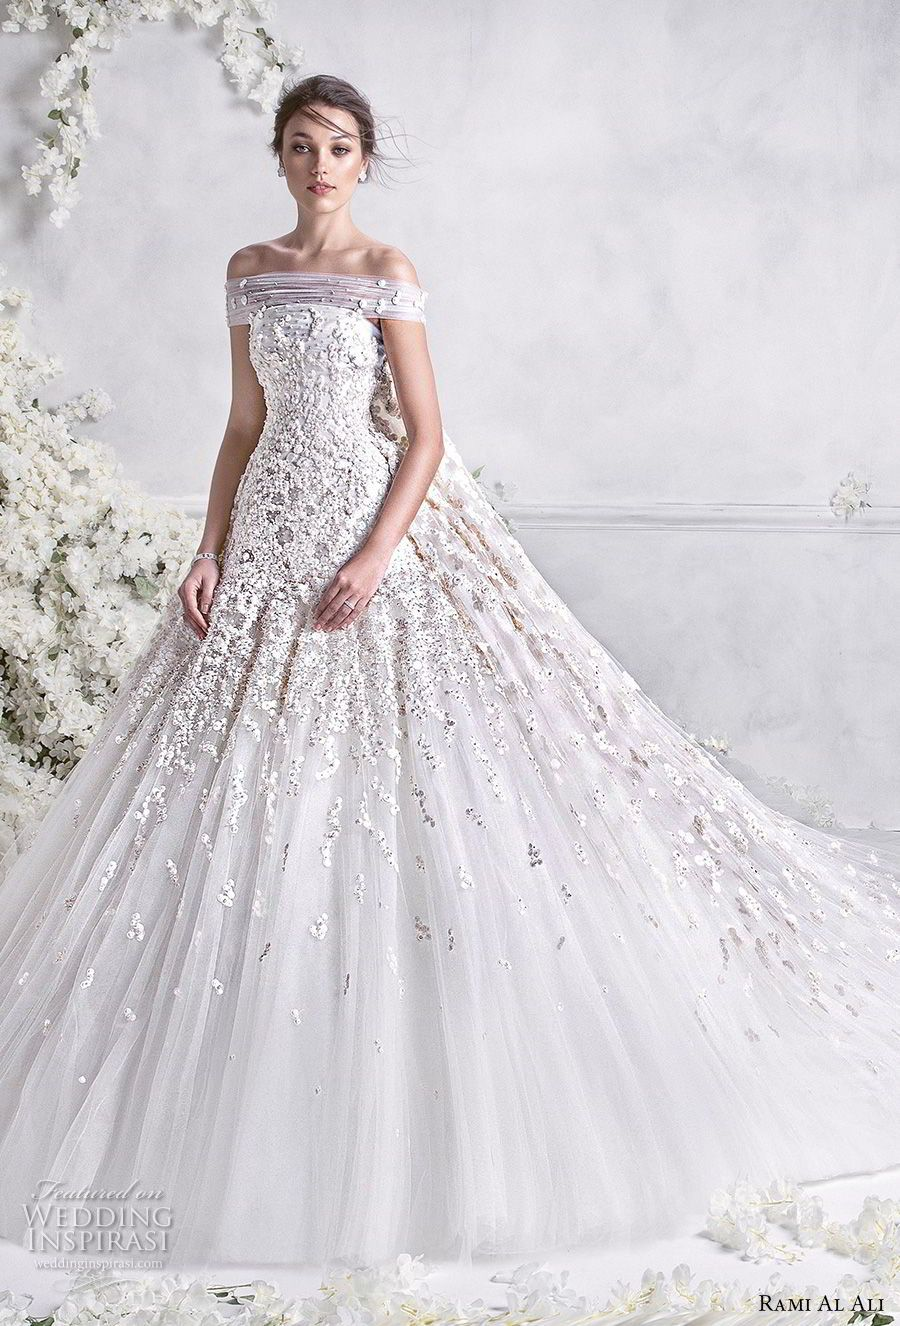 e21ec4181c372 rami al ali 2018 bridal off the shoulder straight across neckline heavily  embellished bodice princess ball gown a line wedding dress royal train (2)  mv ...